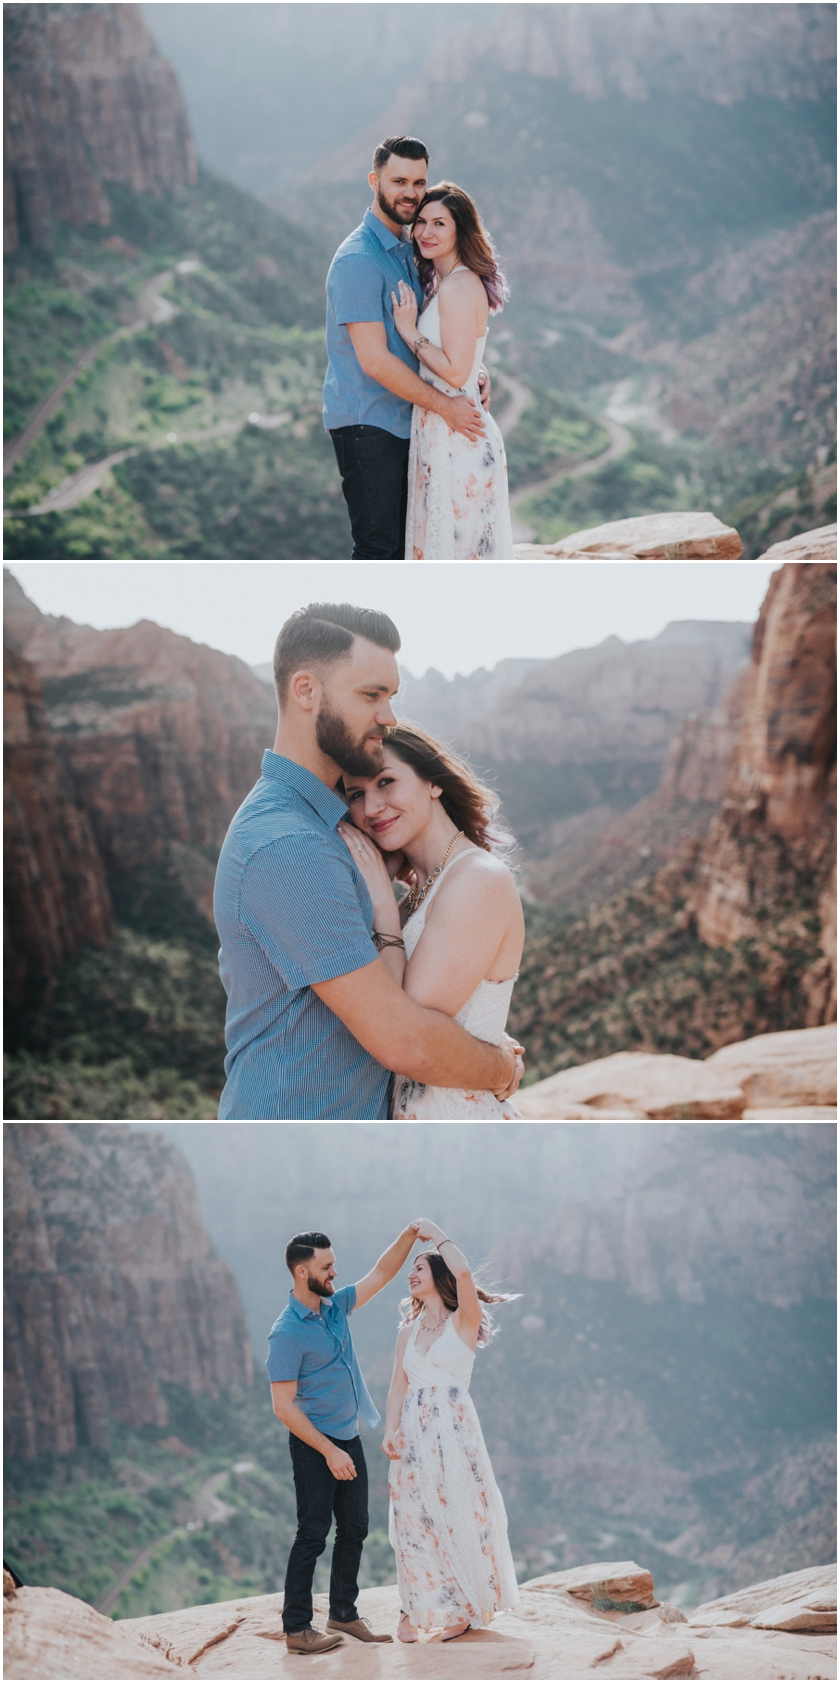 003Amy Cloud Photographer Zion National Park Engagment Session Epic Wedding Photography